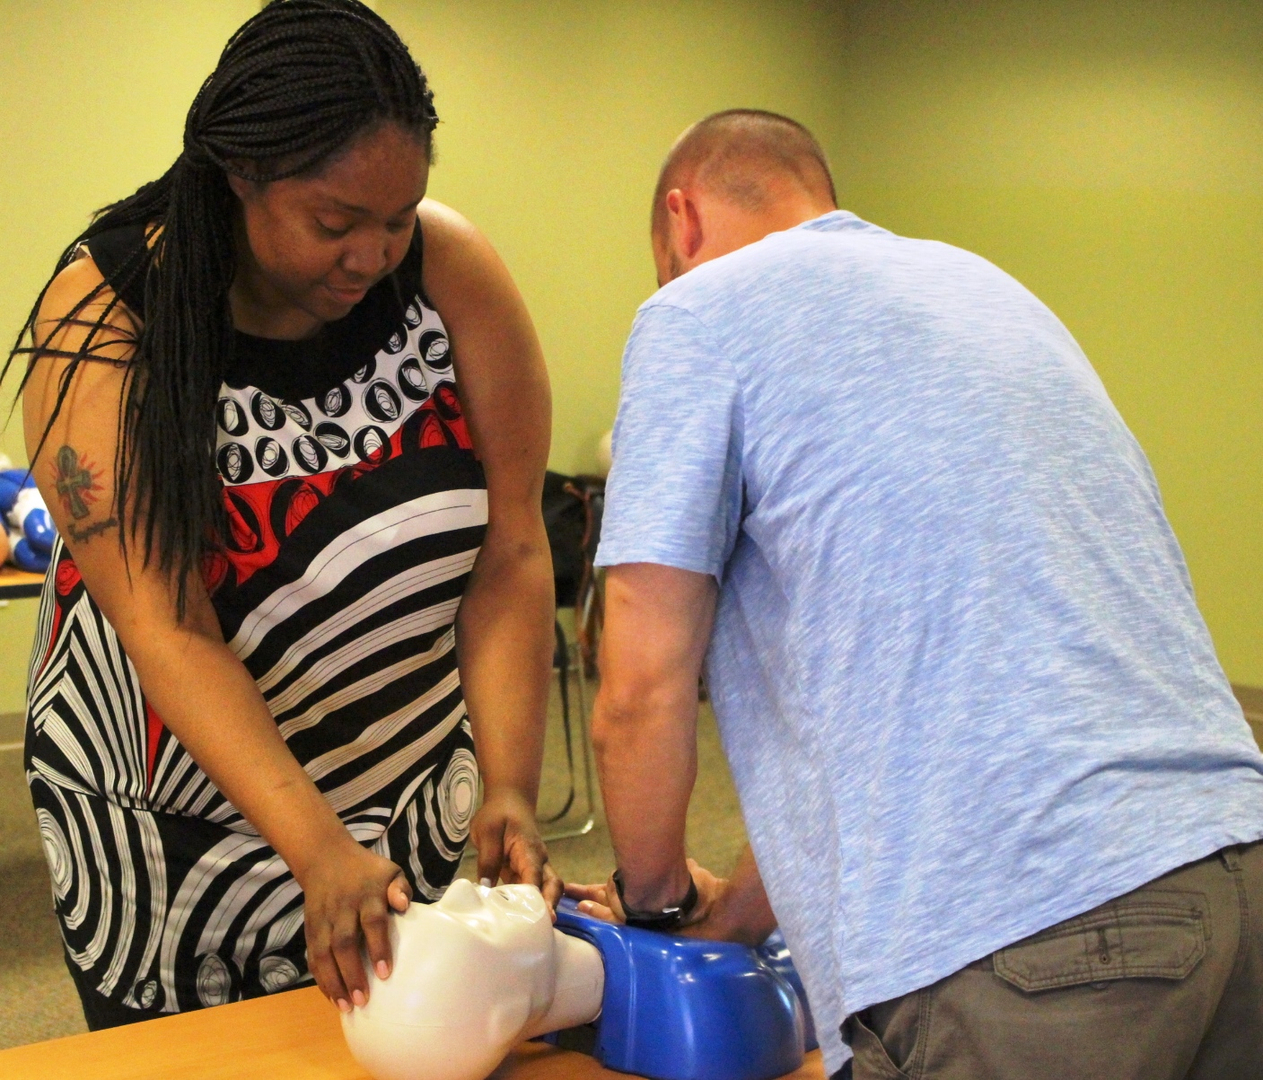 Cpr asap center in columbia sc the most reliable source for aha cpr courses we proudly provide service to sc and georgia our classes are often fun thorough and easy to follow xflitez Image collections